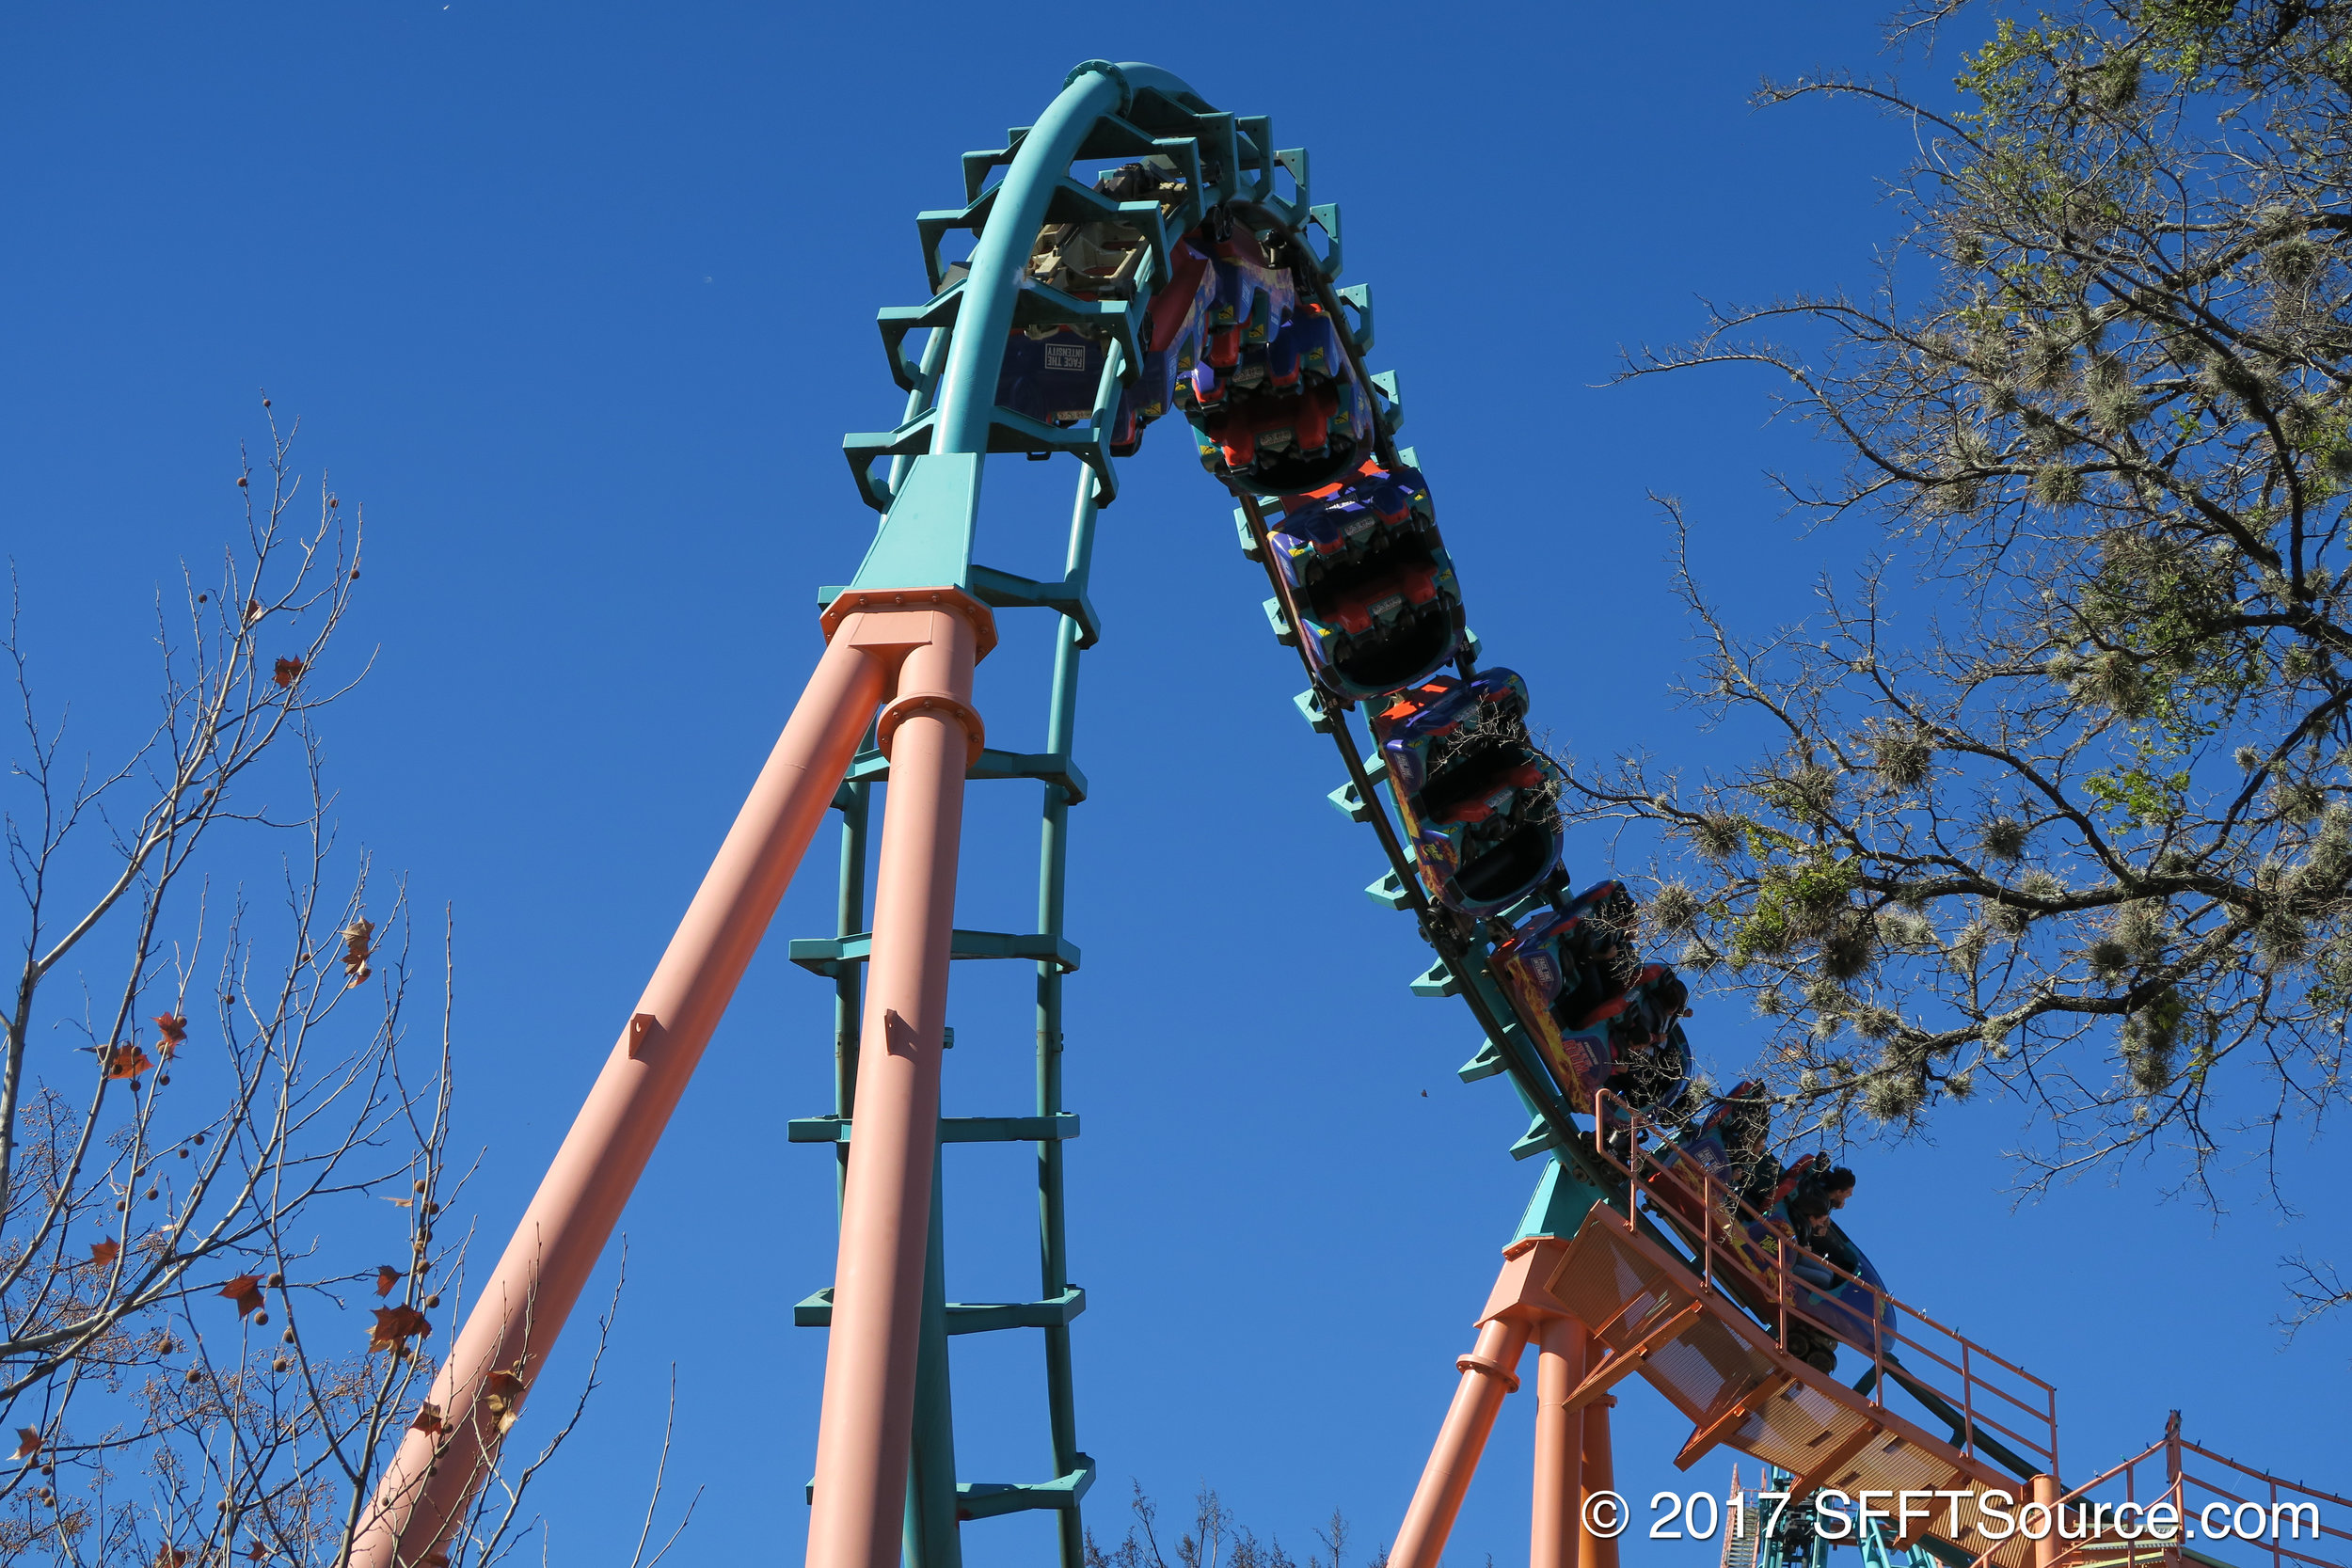 Another shot at the ride's cobra roll element.